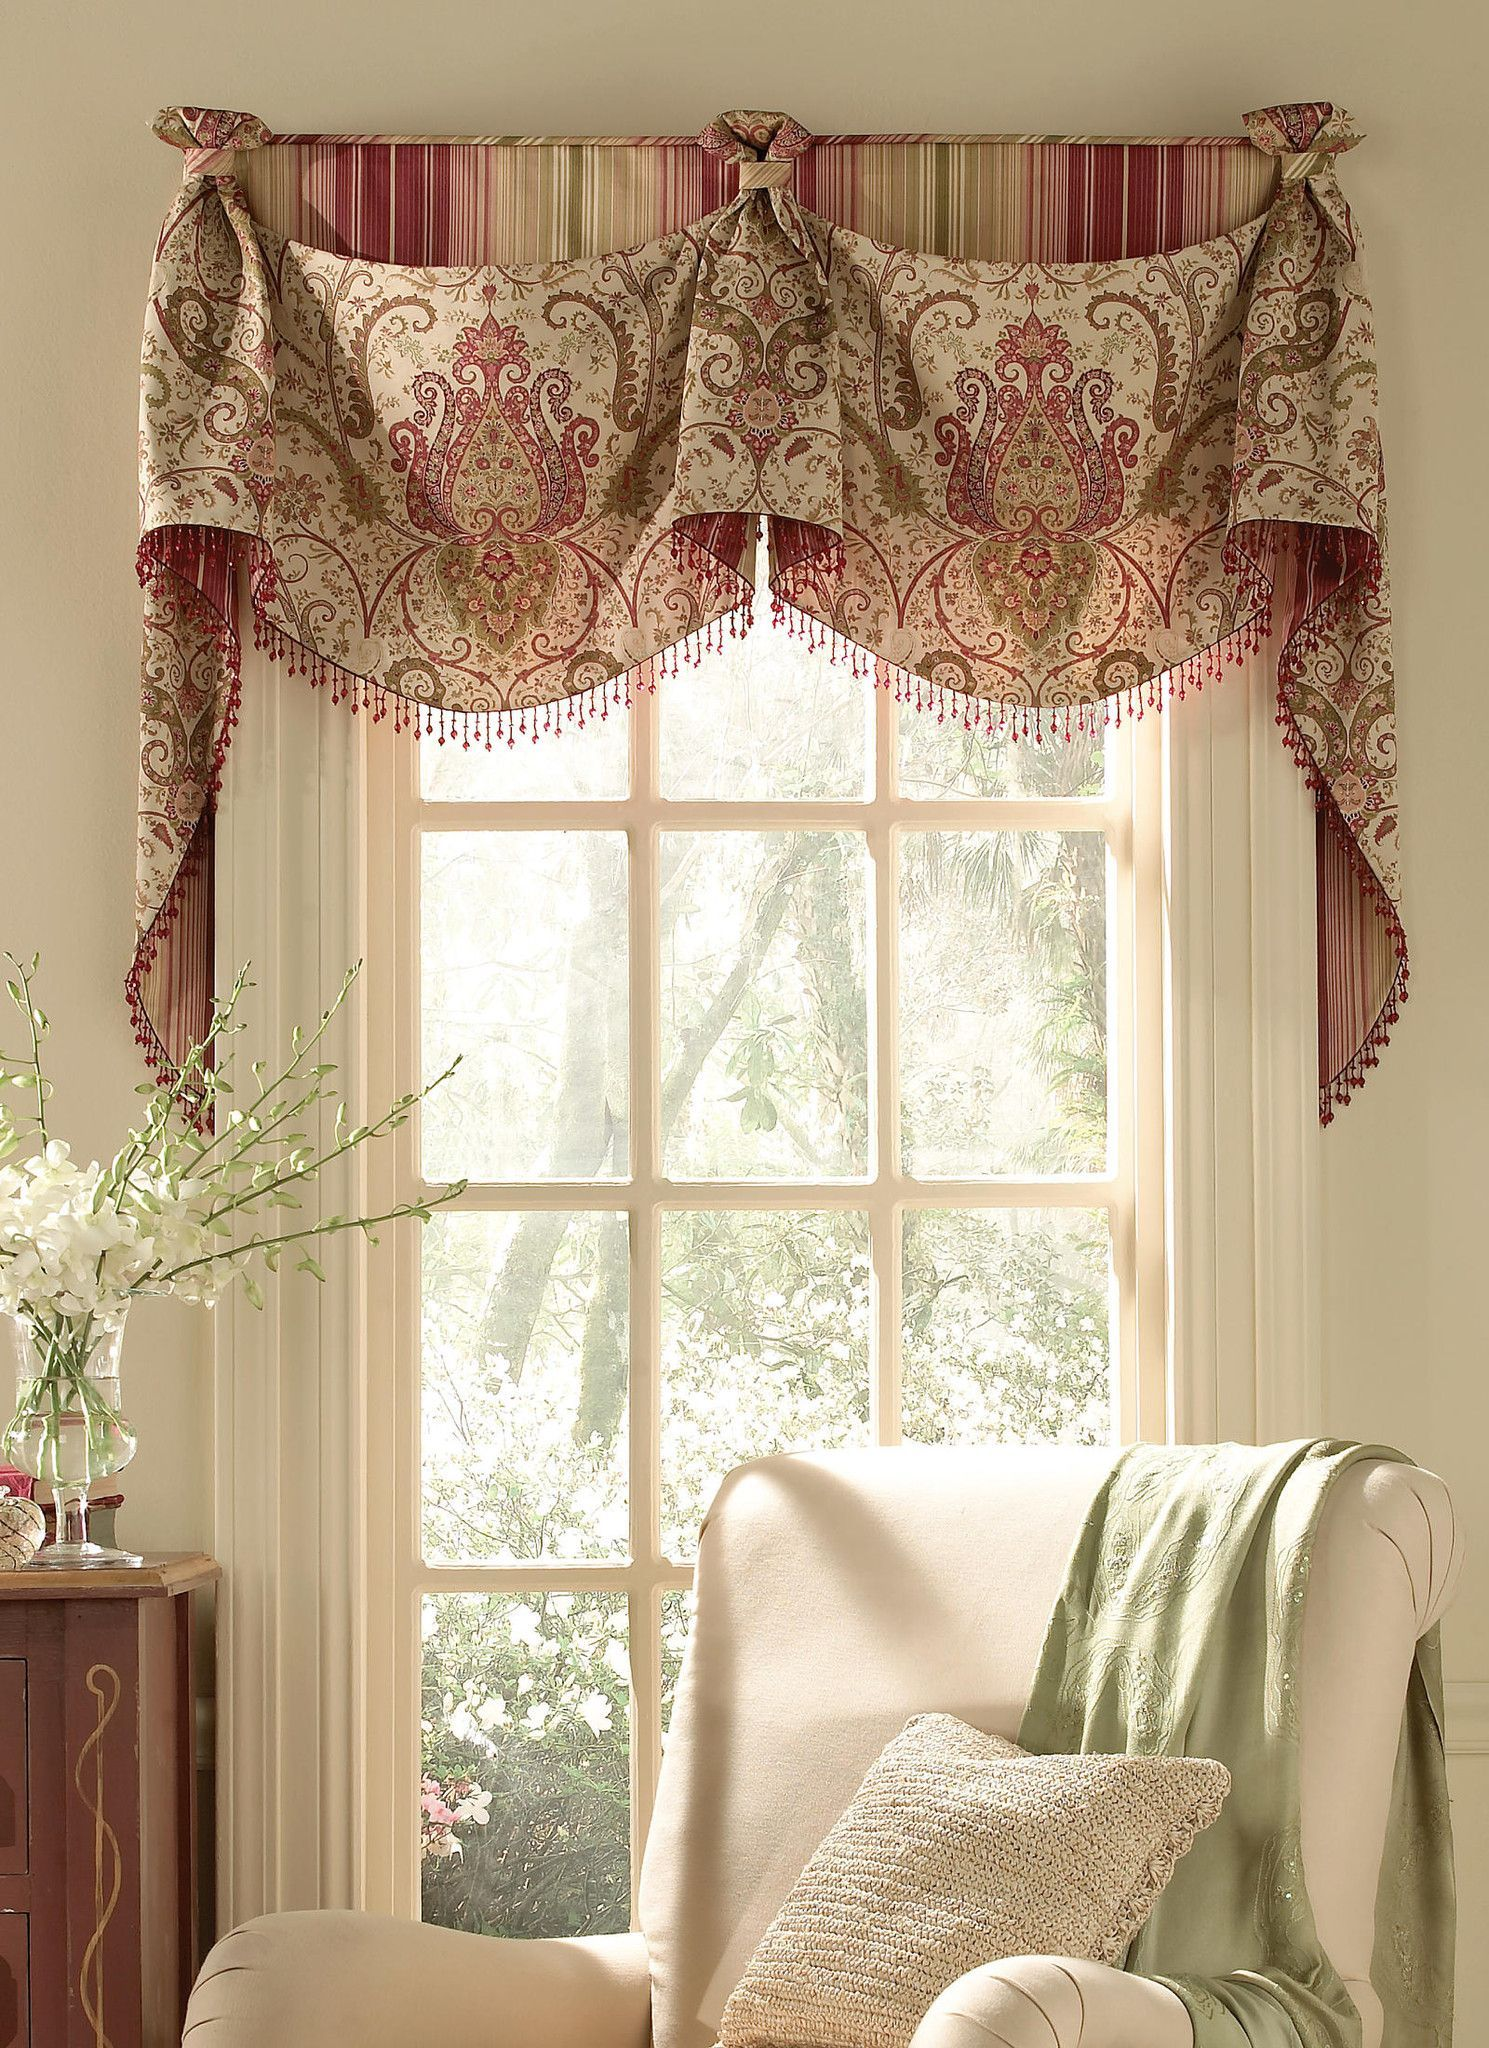 Pay.housebeautiful.com 253 Empire Over Straight Valance You Pay 12 Down  Valance Easy